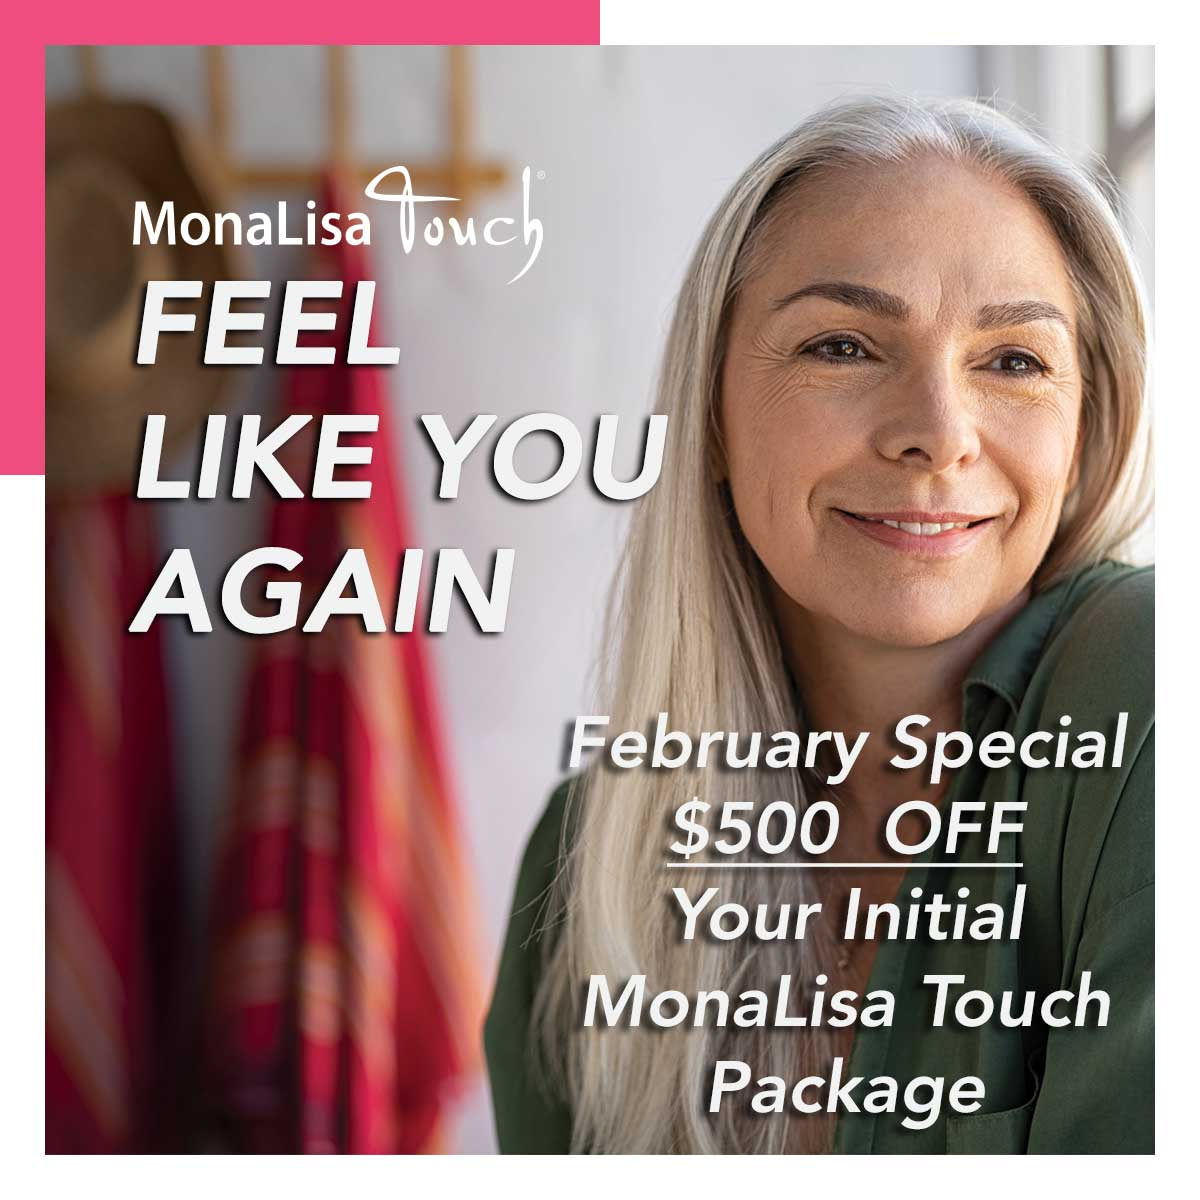 MonaLisa Touch - Feel Like You Again! February Special at The Spa Central Coast